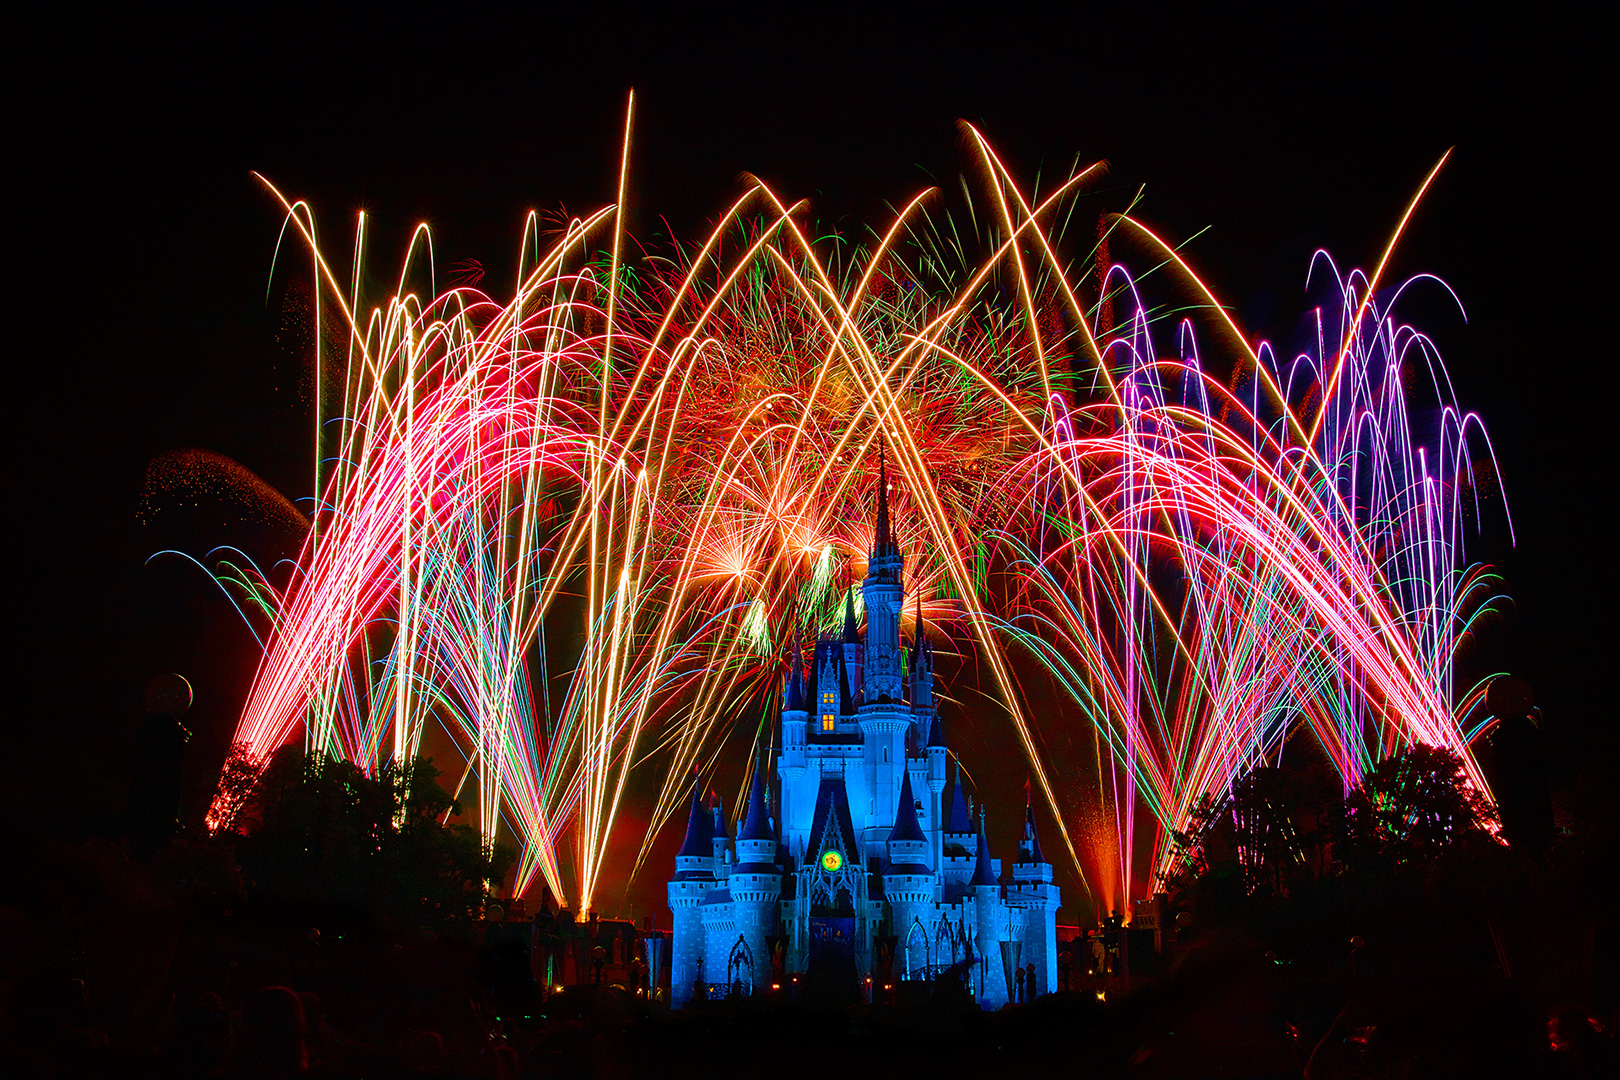 Disney Photography, Disney World Photography, Disneyland Photography, Disney Photos, Disney Pictures, Walt Disney World, The Magic Kingdom, Walt Disney, Mickey Mouse, Orlando, Florida, Theme Park,  Cindarella Castle, Wishes, Fireworks